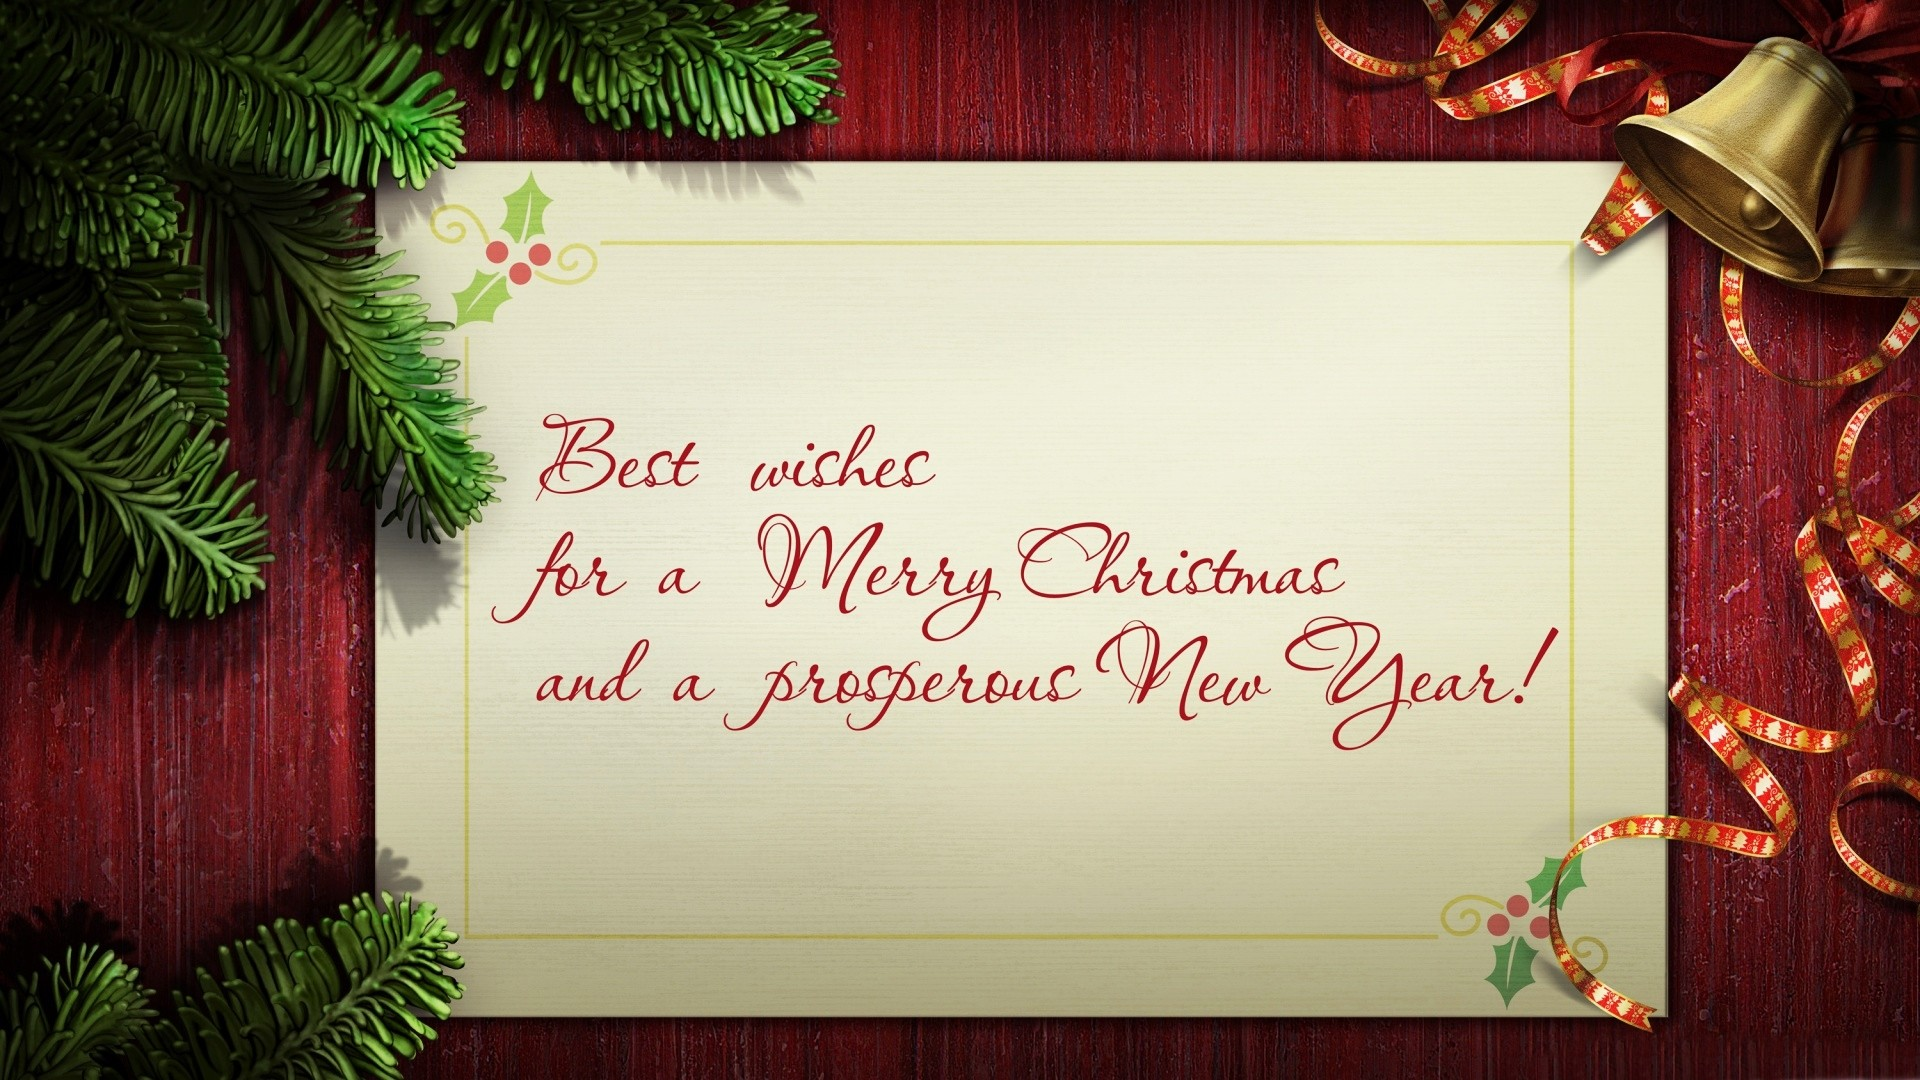 Top Merry Christmas Quotes And Sayings With Wallpapers 2015: Merry Christmas Wallpapers Quotes